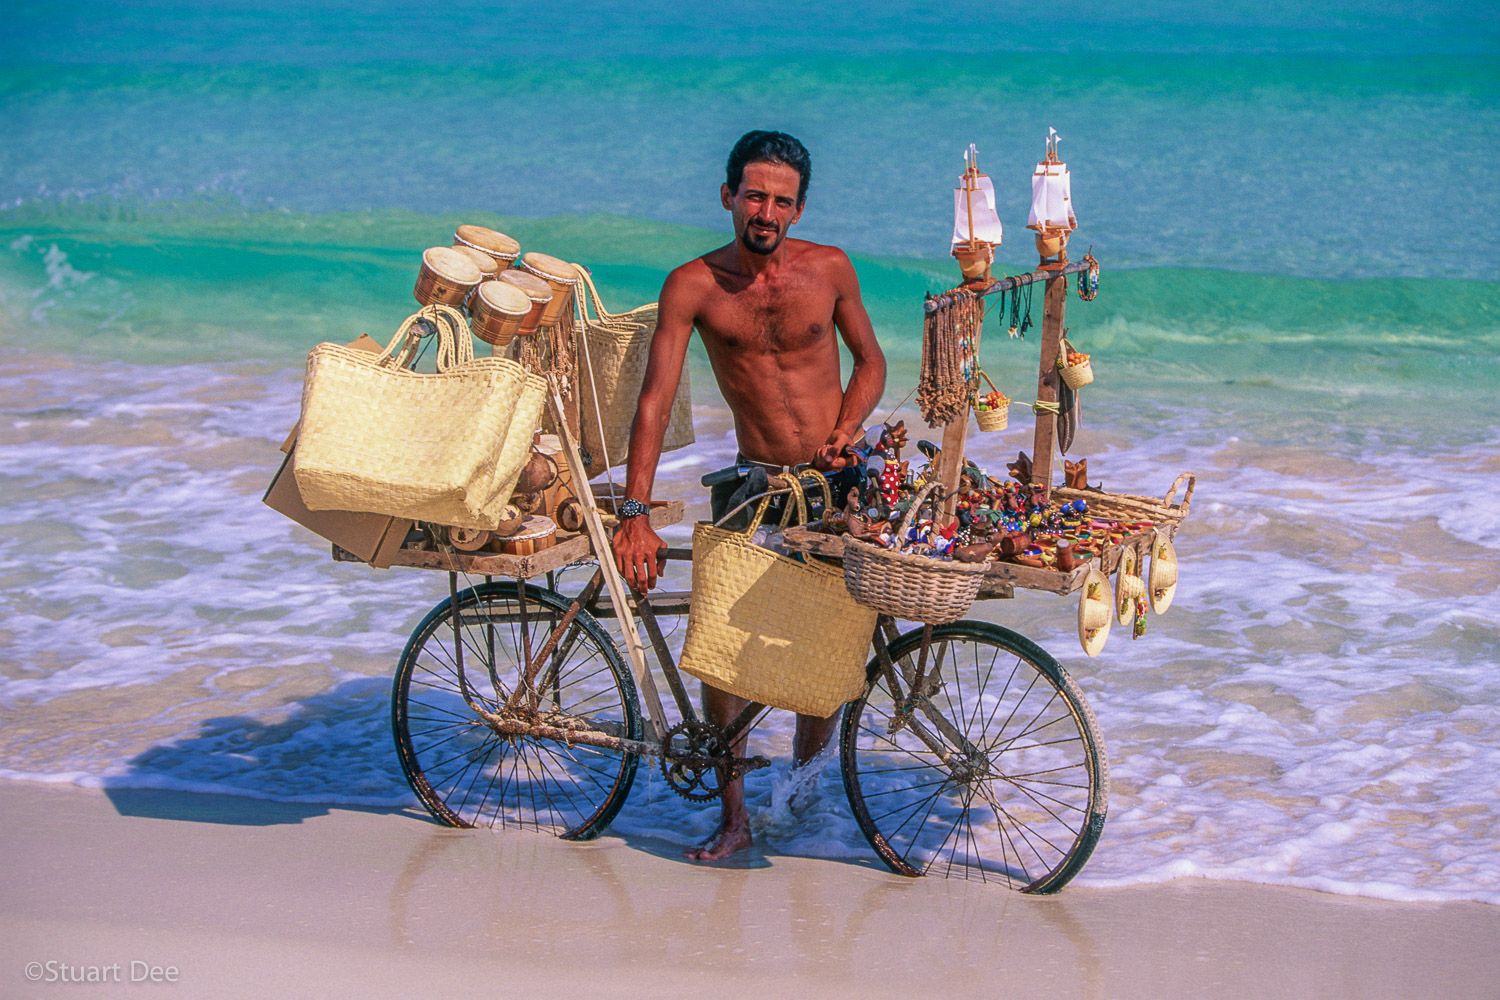 Beach vendor selling souvenirs, with his bicycle, Varadero, Cuba  